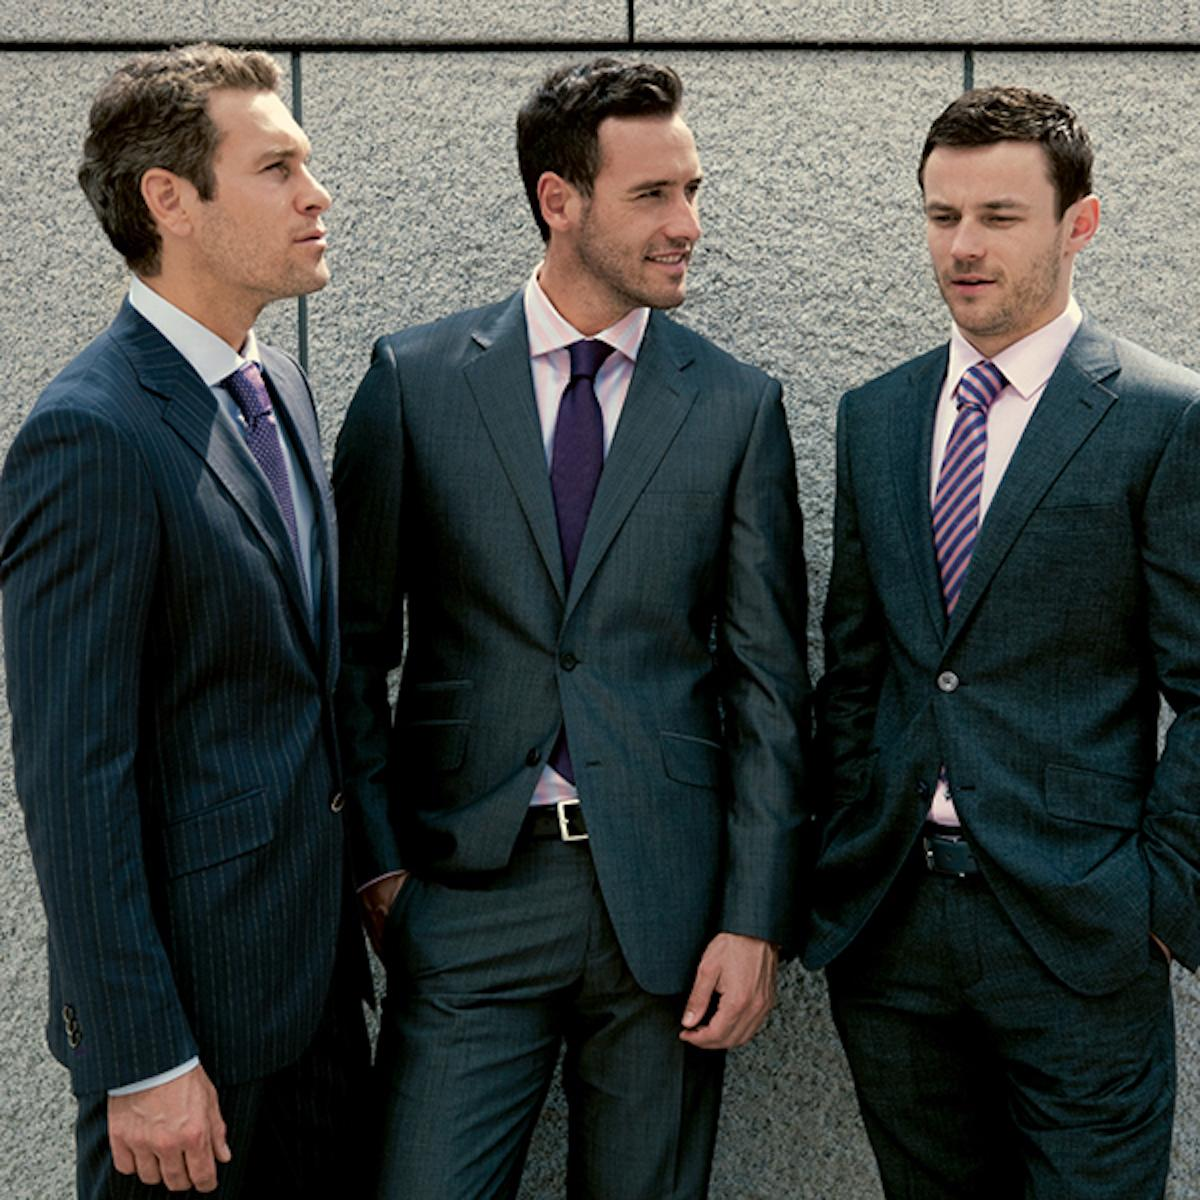 Classic outfits for businessmen. Ideal for meetings or summits